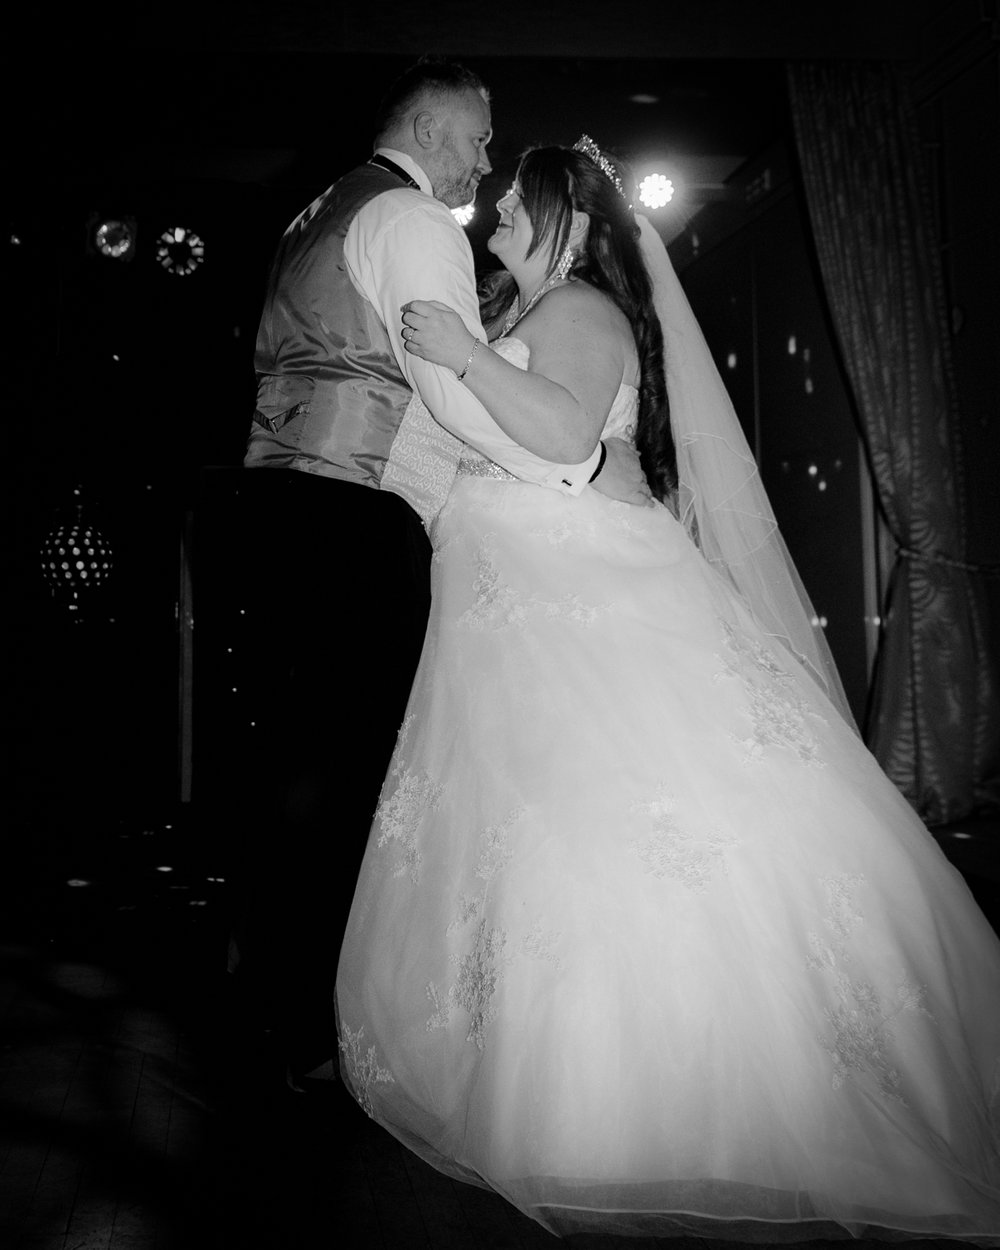 Mr & Mrs Wise-384.jpg